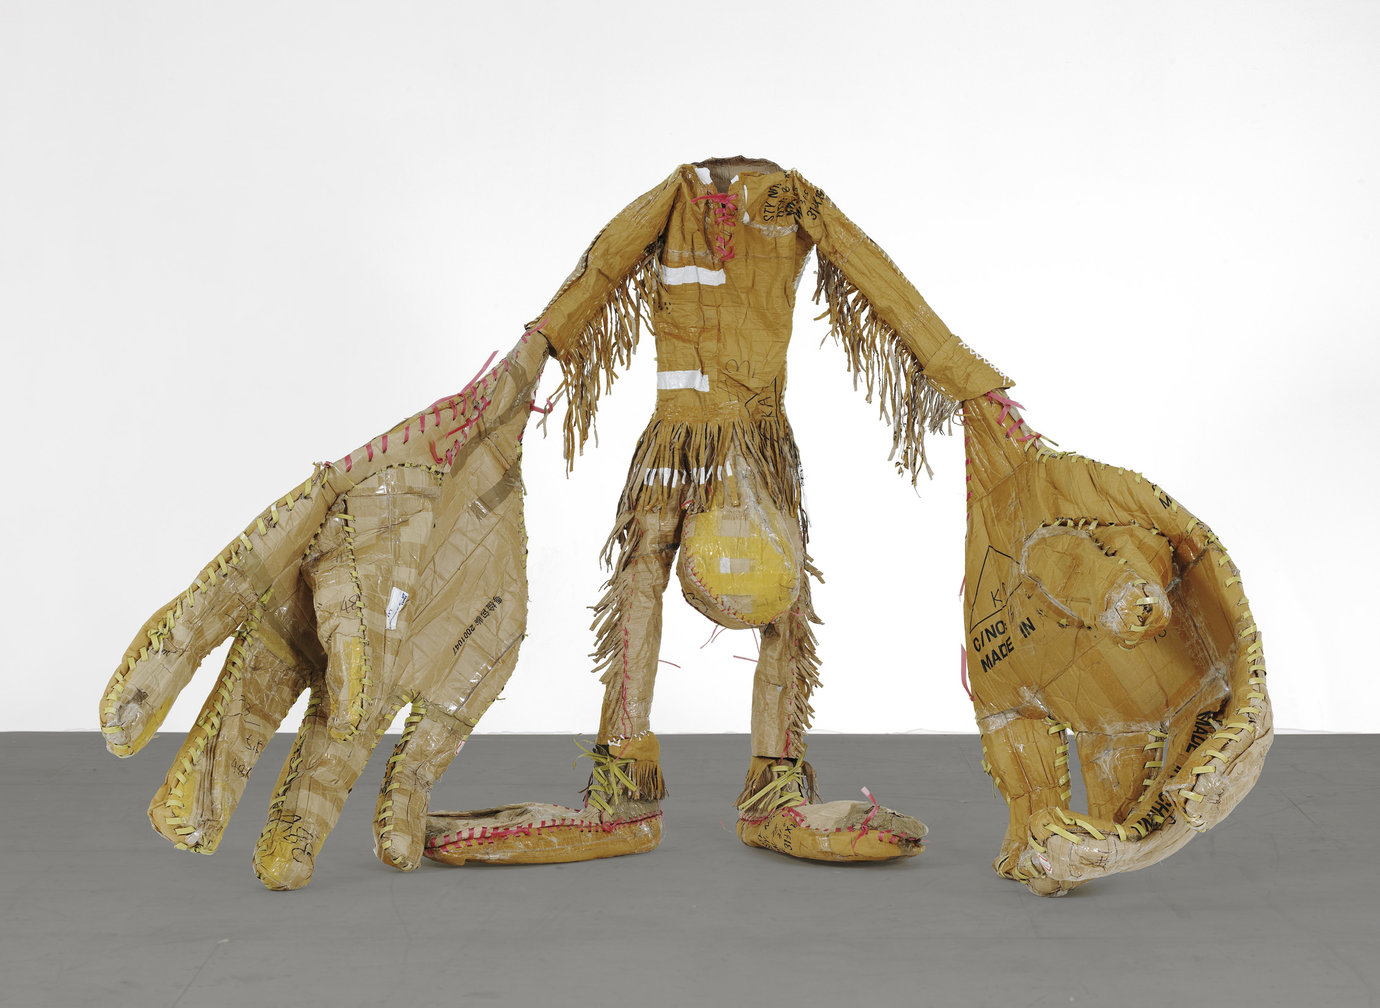 ", 2006-2007. Cardboard, box strapping and urethane foam, 5' 9-1/2"" x 8' 7"" x 5' 8"" (176.5 cm x 261.6 cm x 172.7 cm)."